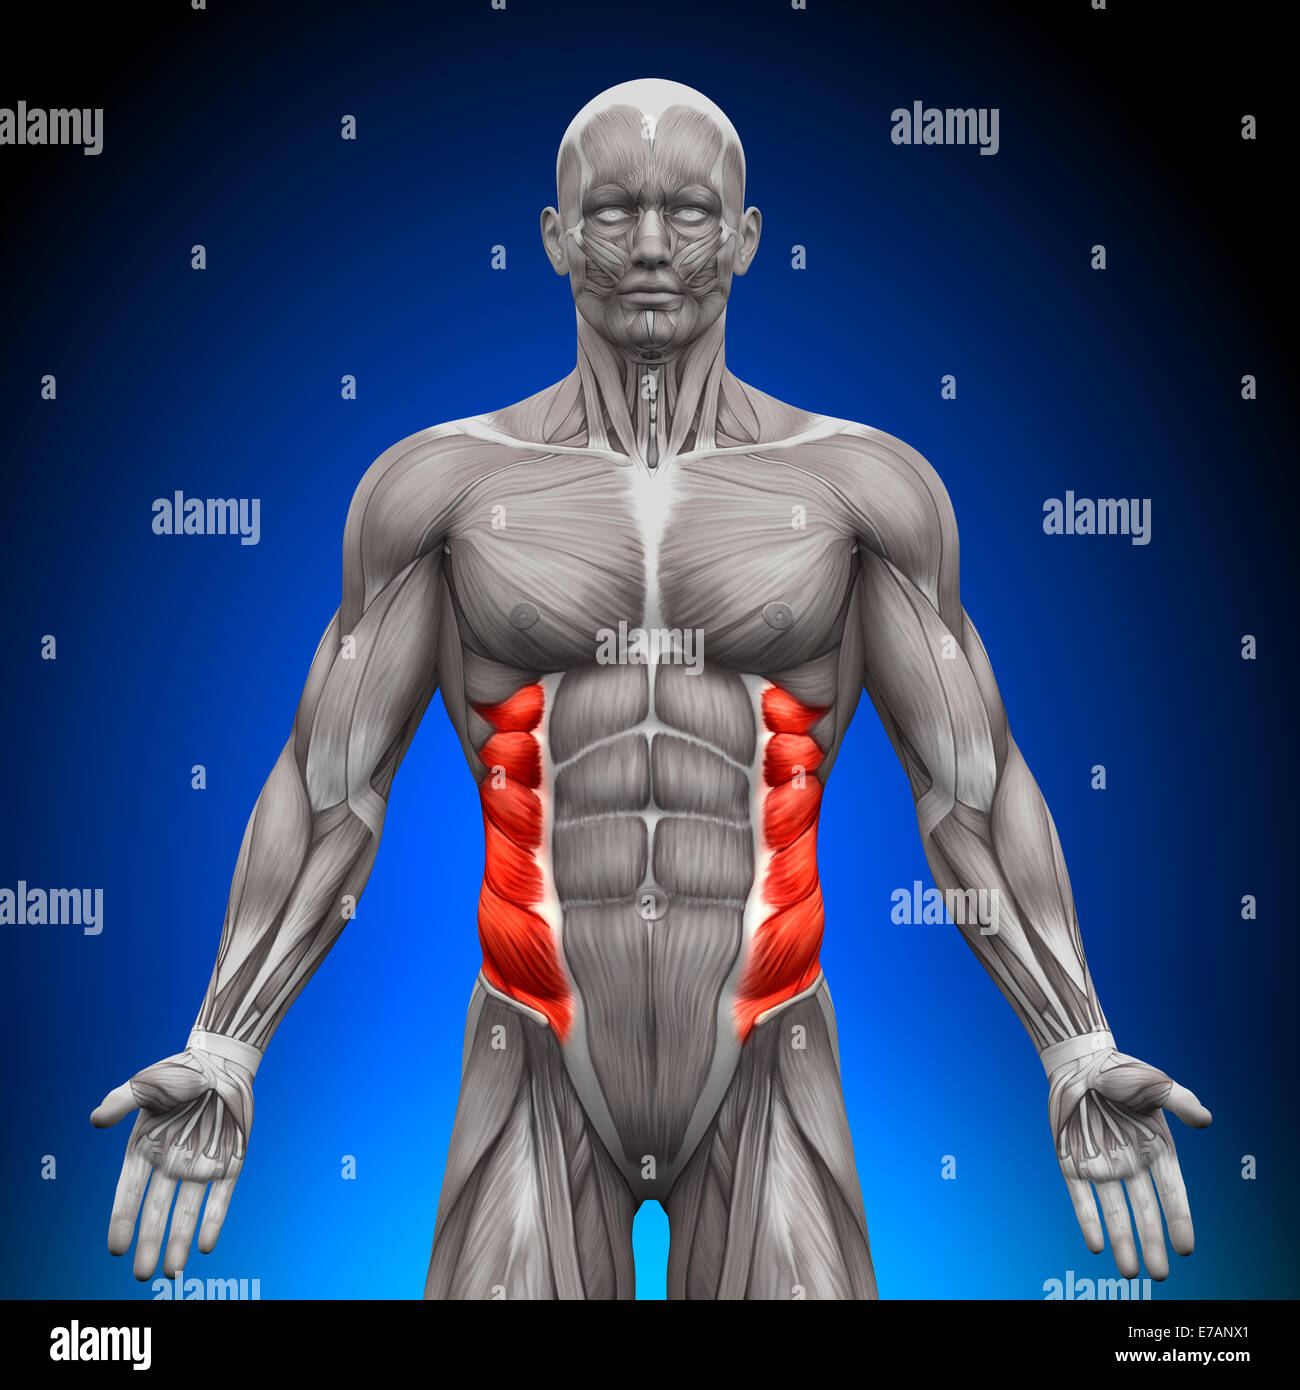 External Oblique - Anatomy Muscles Stock Photo: 73380777 - Alamy